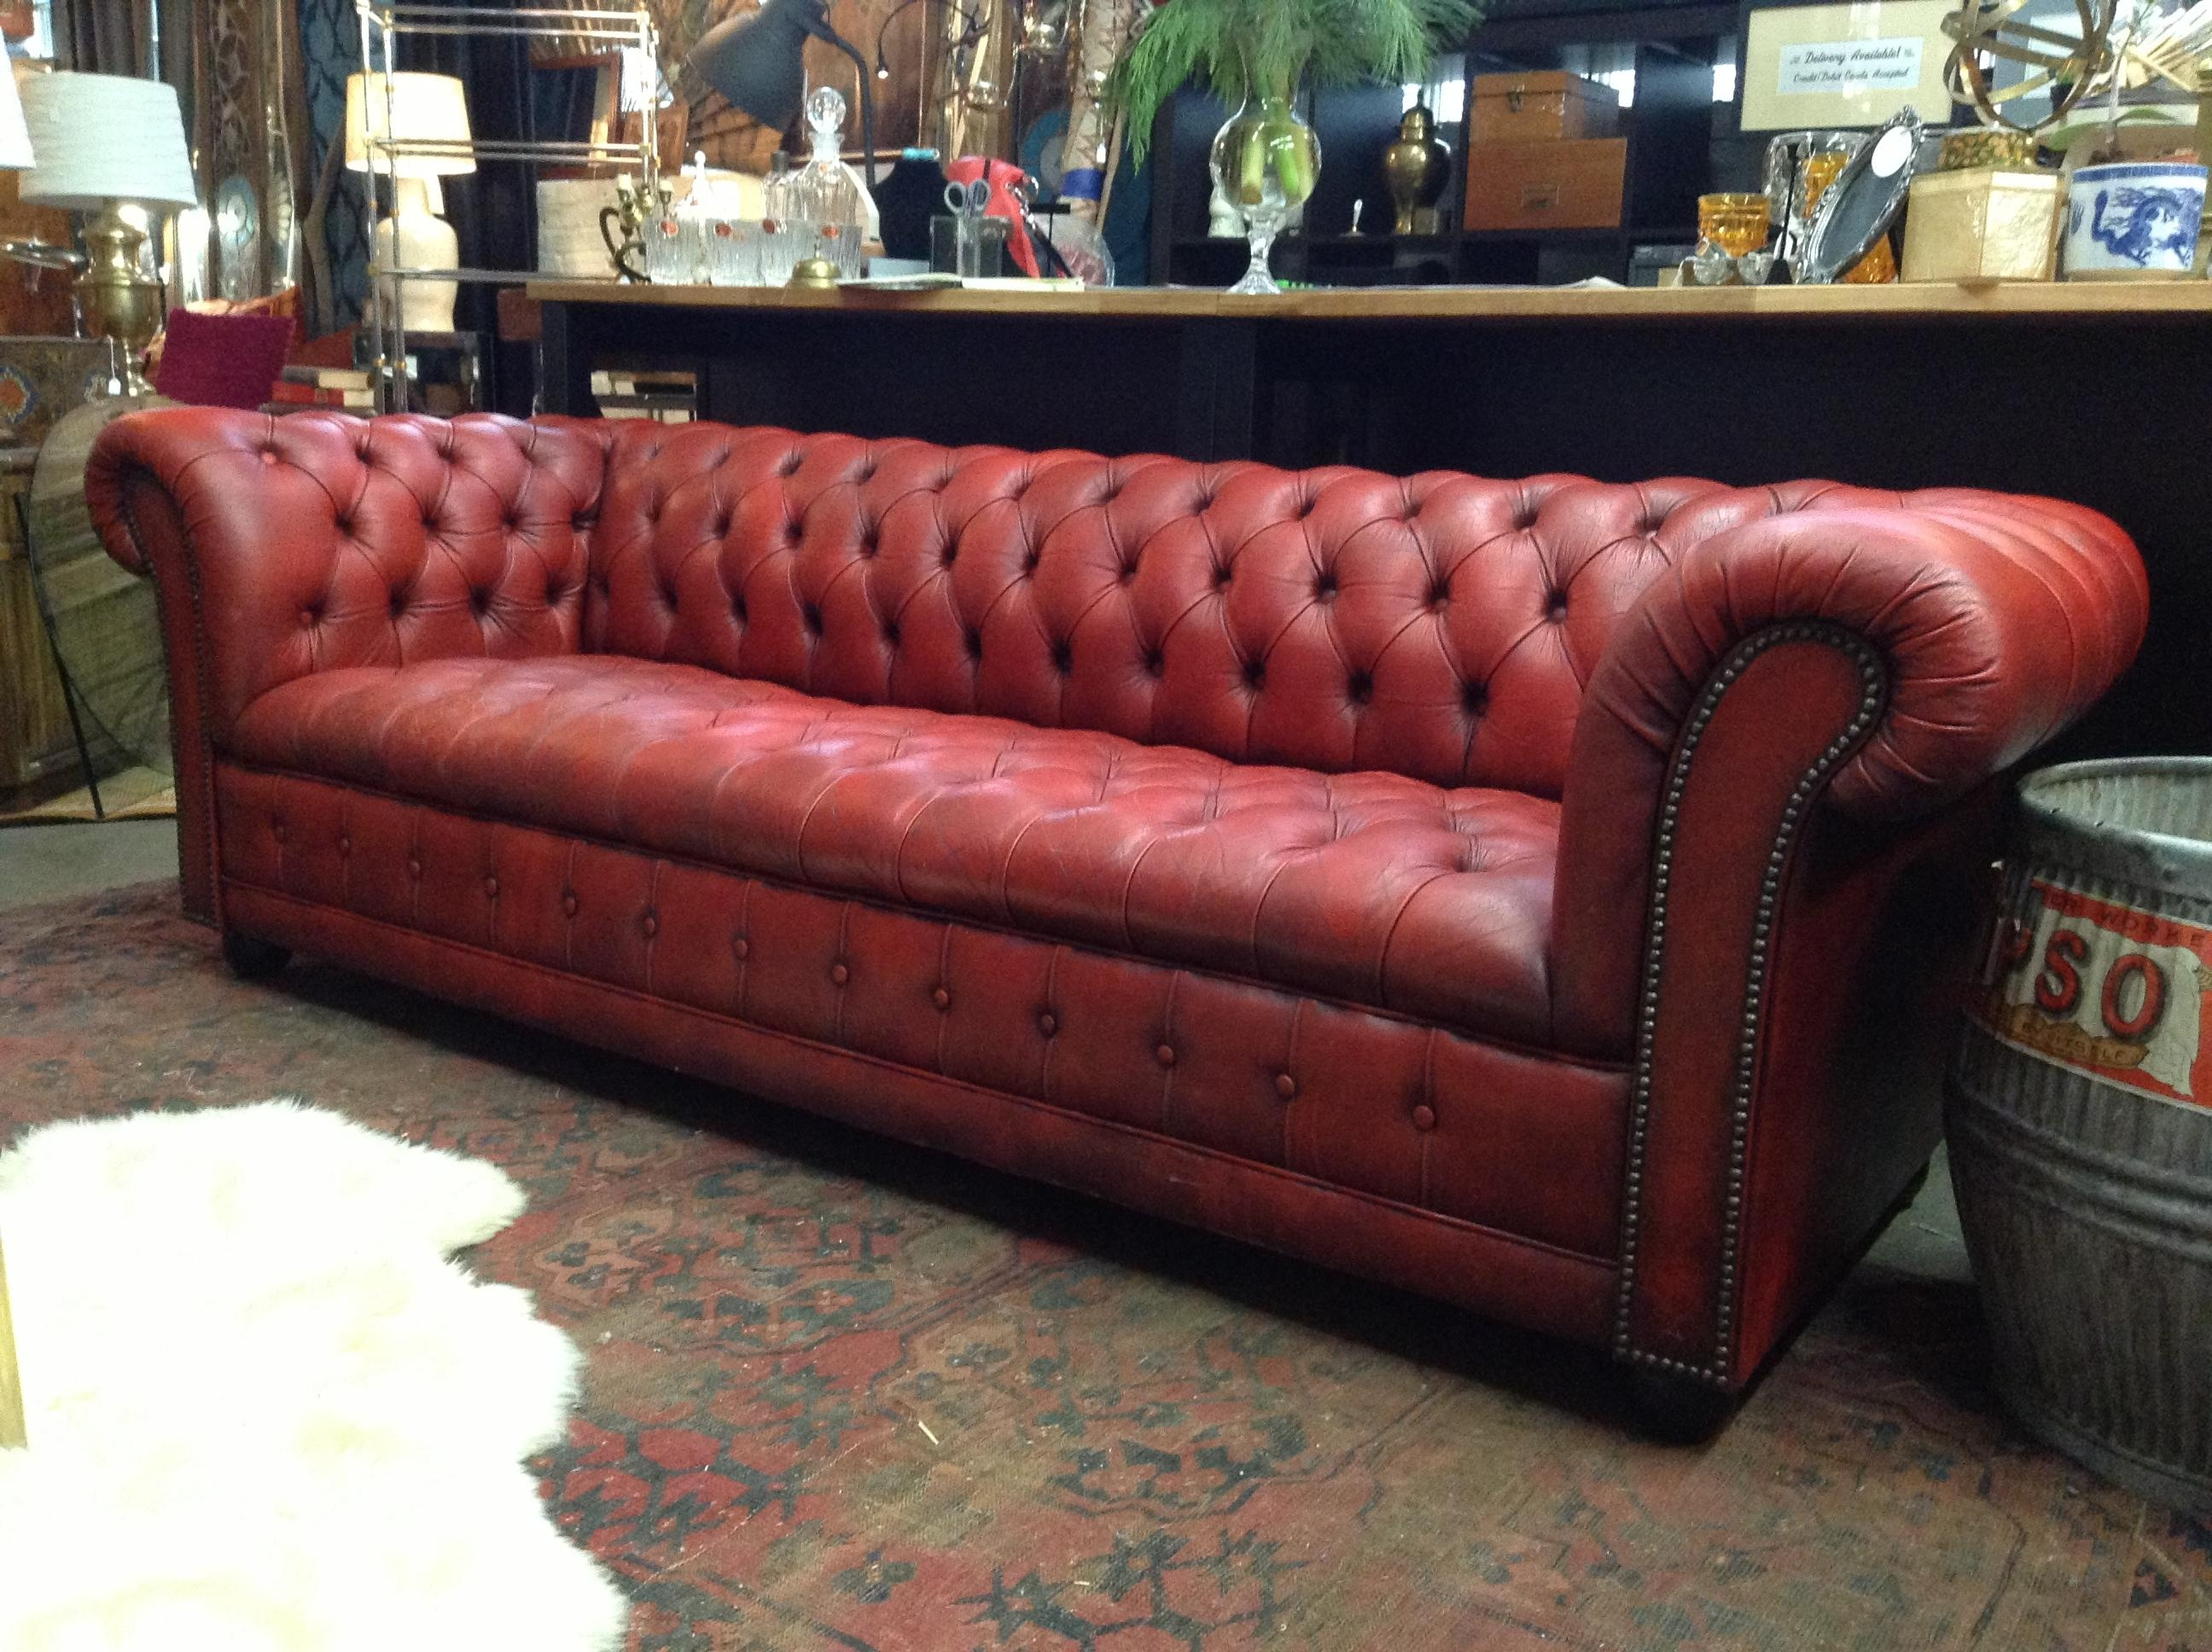 Antique Leather Sofa Bed | Tehranmix Decoration Within Victorian Leather Sofas (Image 1 of 20)